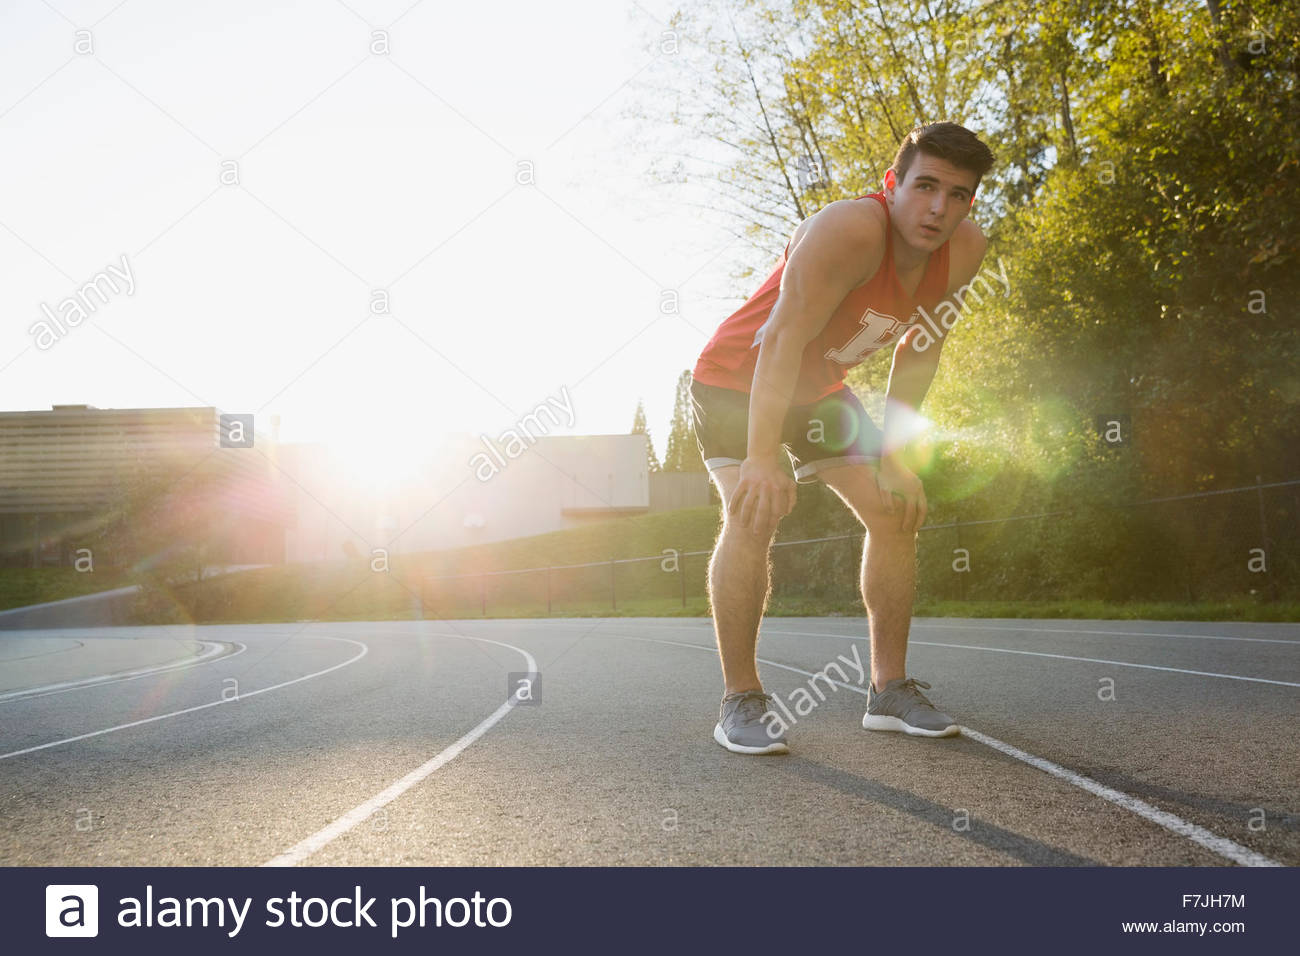 Tired high school track and field athlete - Stock Image